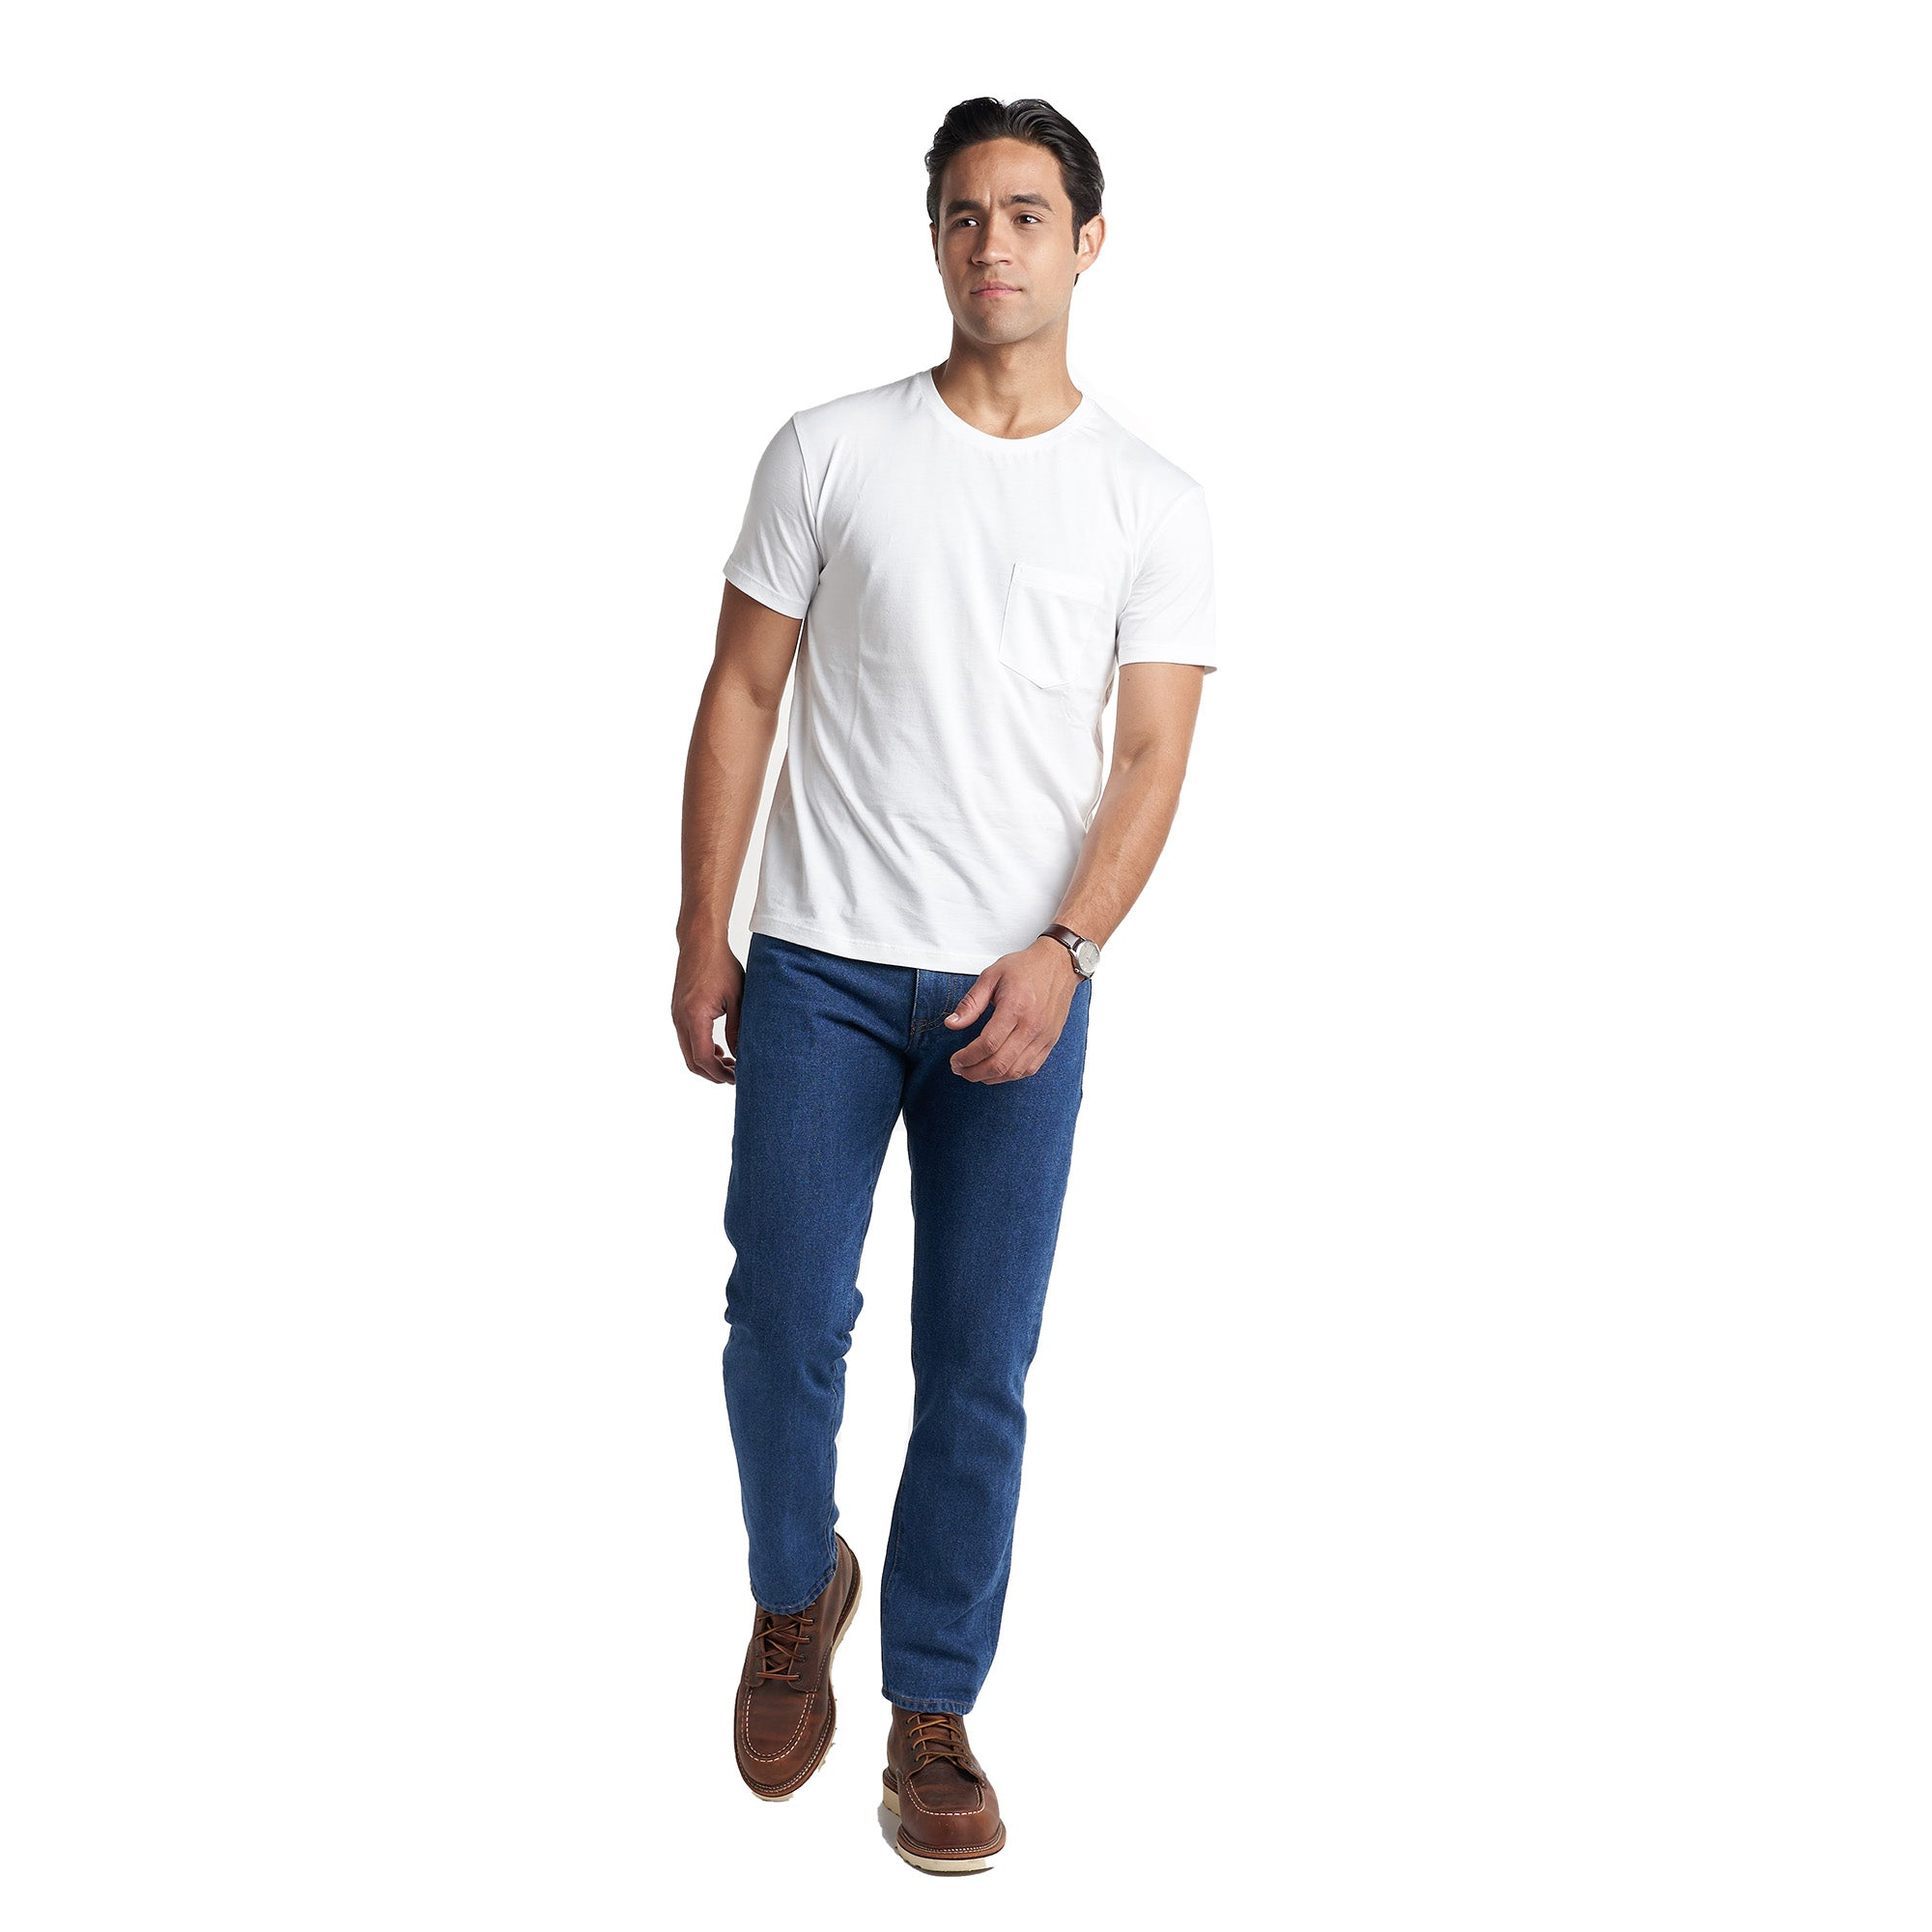 PMNYC Jeans Classic Fit - Original Blue